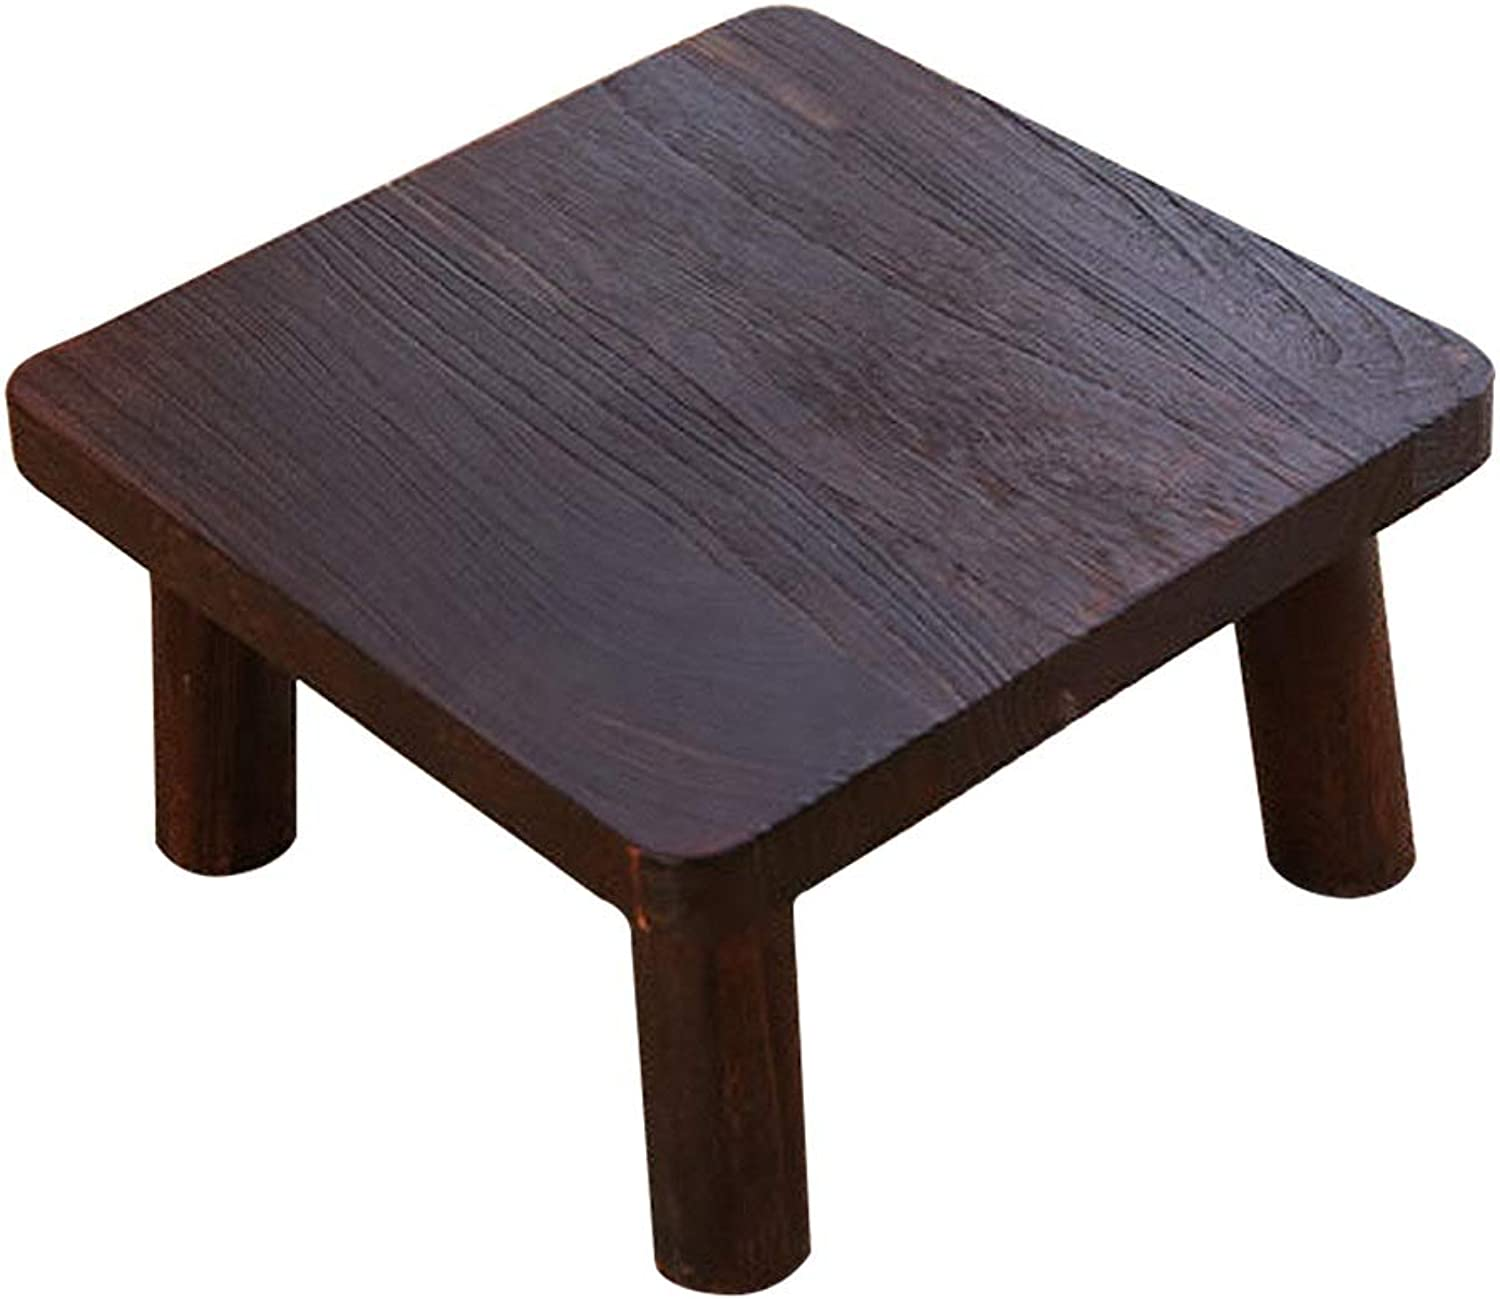 Coffee Tables Small Table Coffee Table Paulownia Wood Side Table Simple Low Table Lazy Computer Table Tatami Platform Solid Wood Table Mini Solid Wood Table (color   Brown, Size   40  40  22cm)